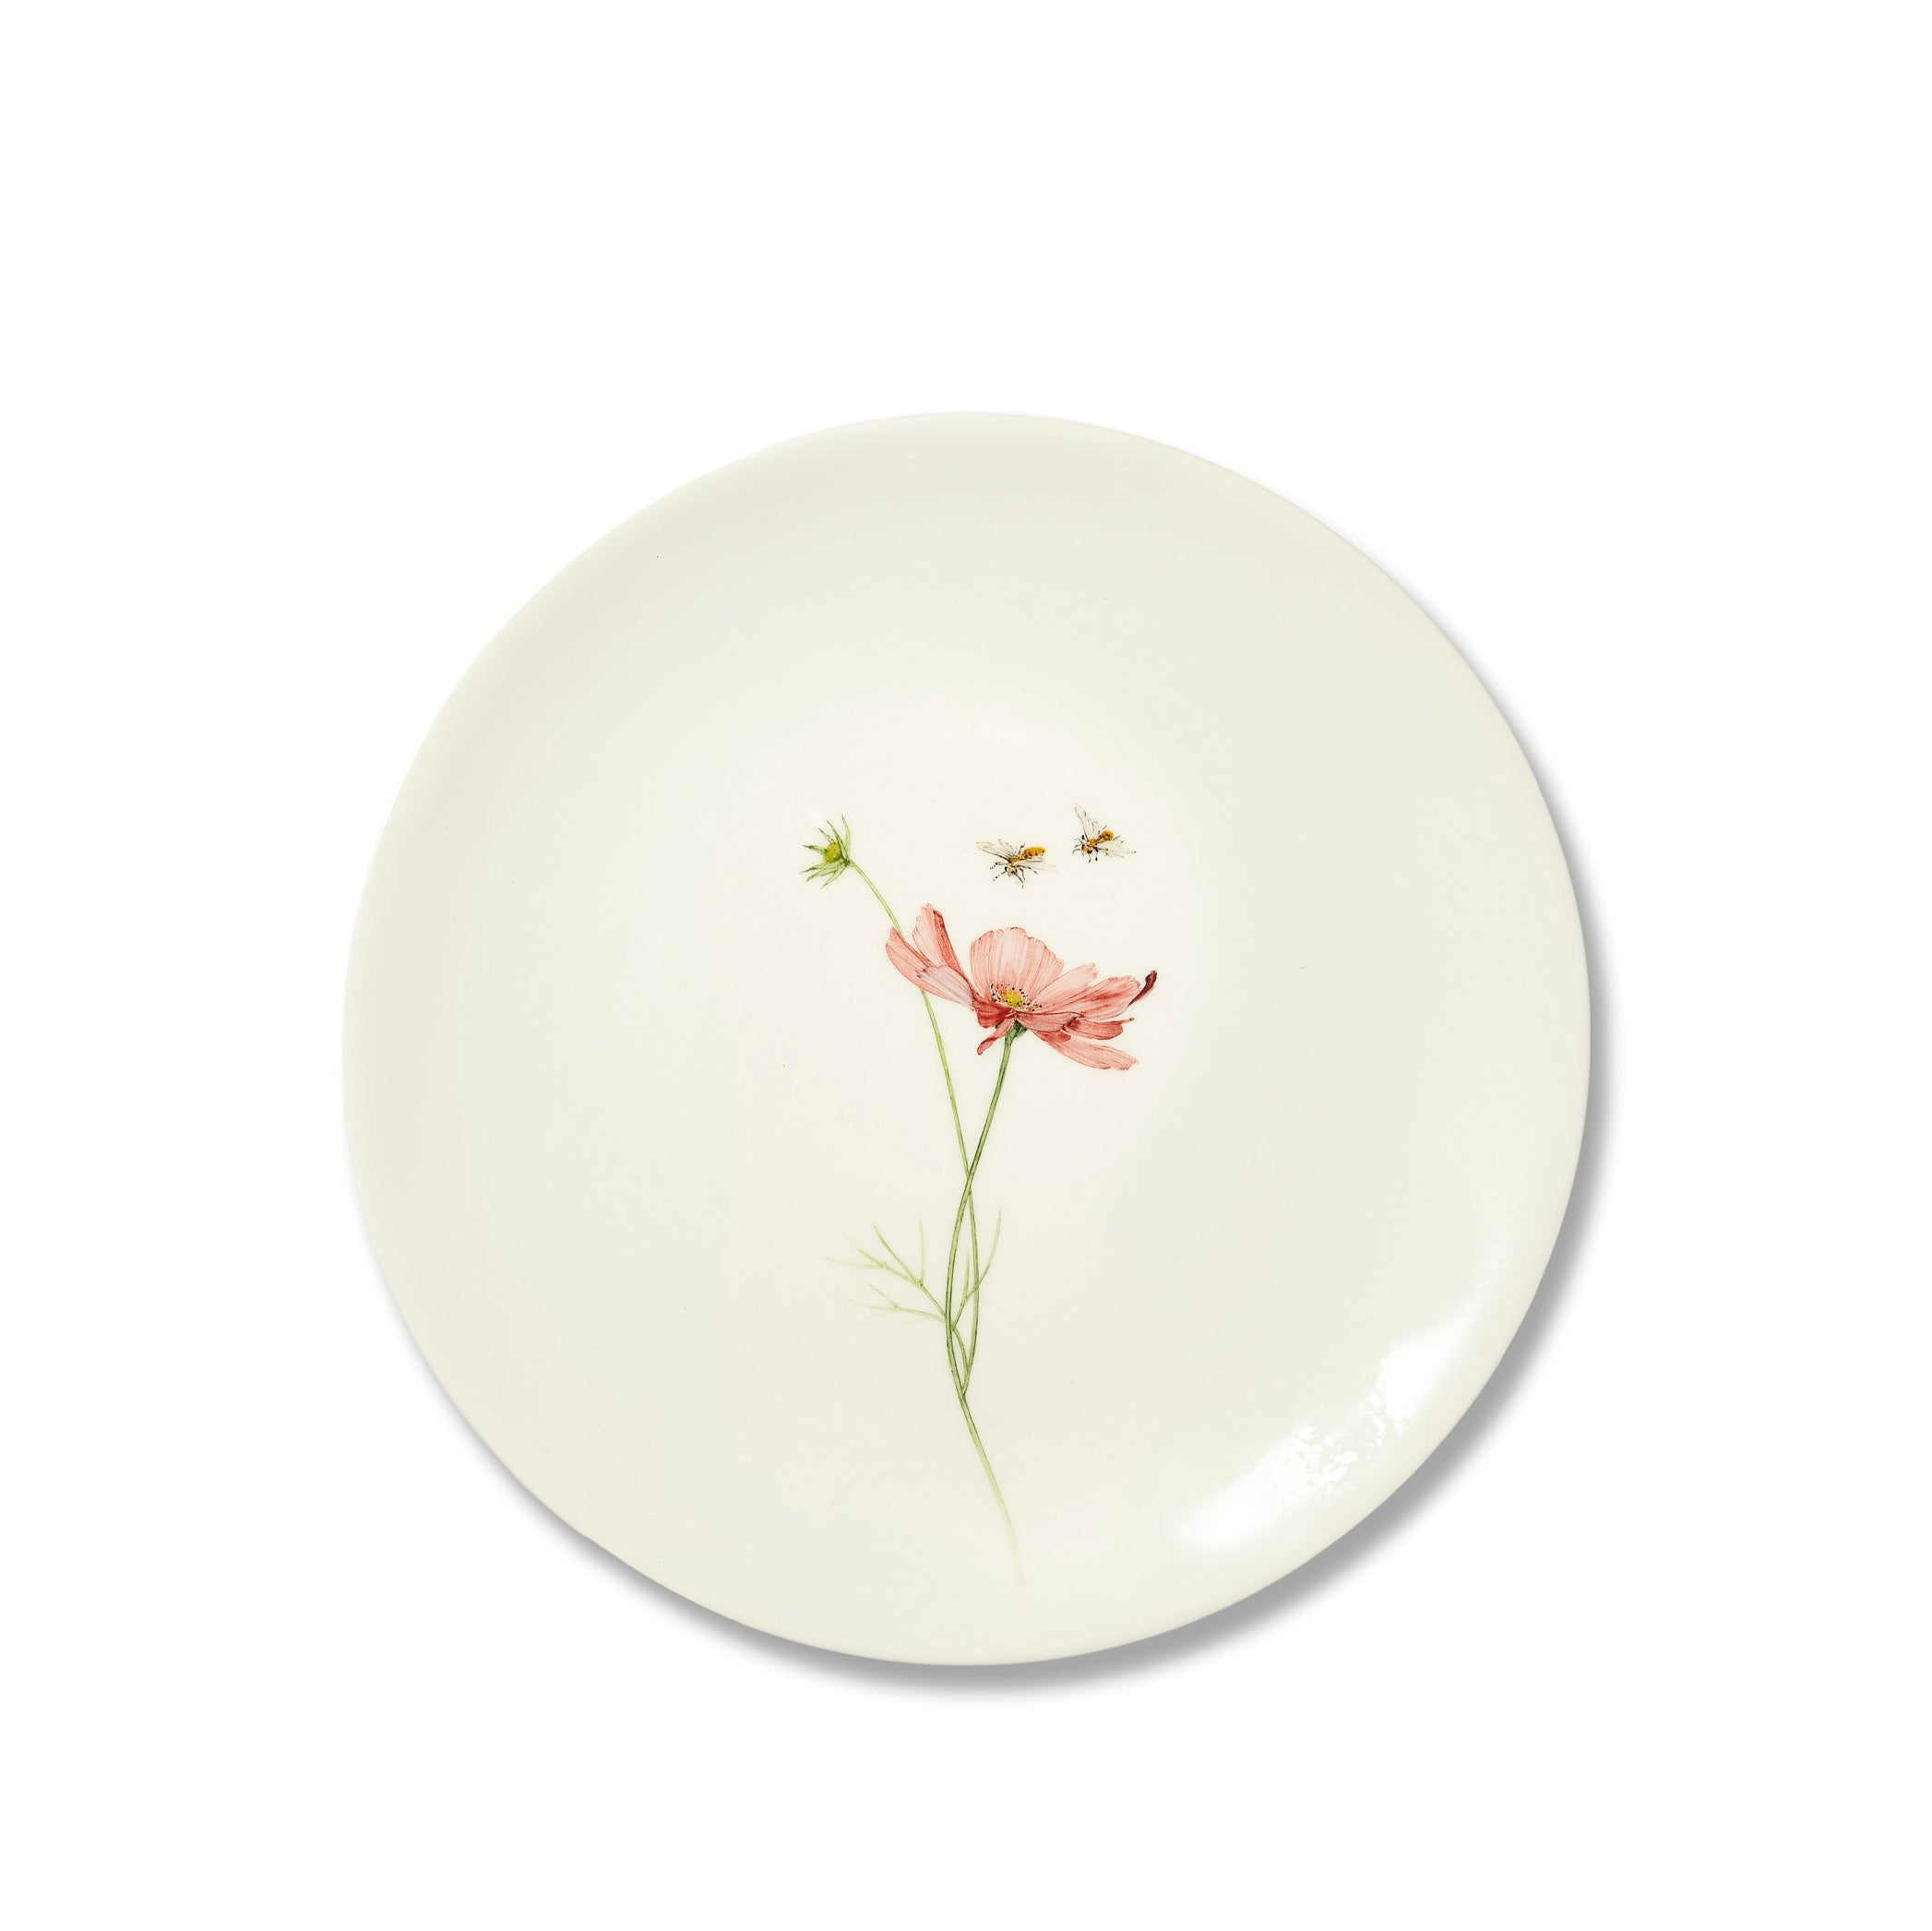 Bloom Cosmos Dinner Plate, 25cm